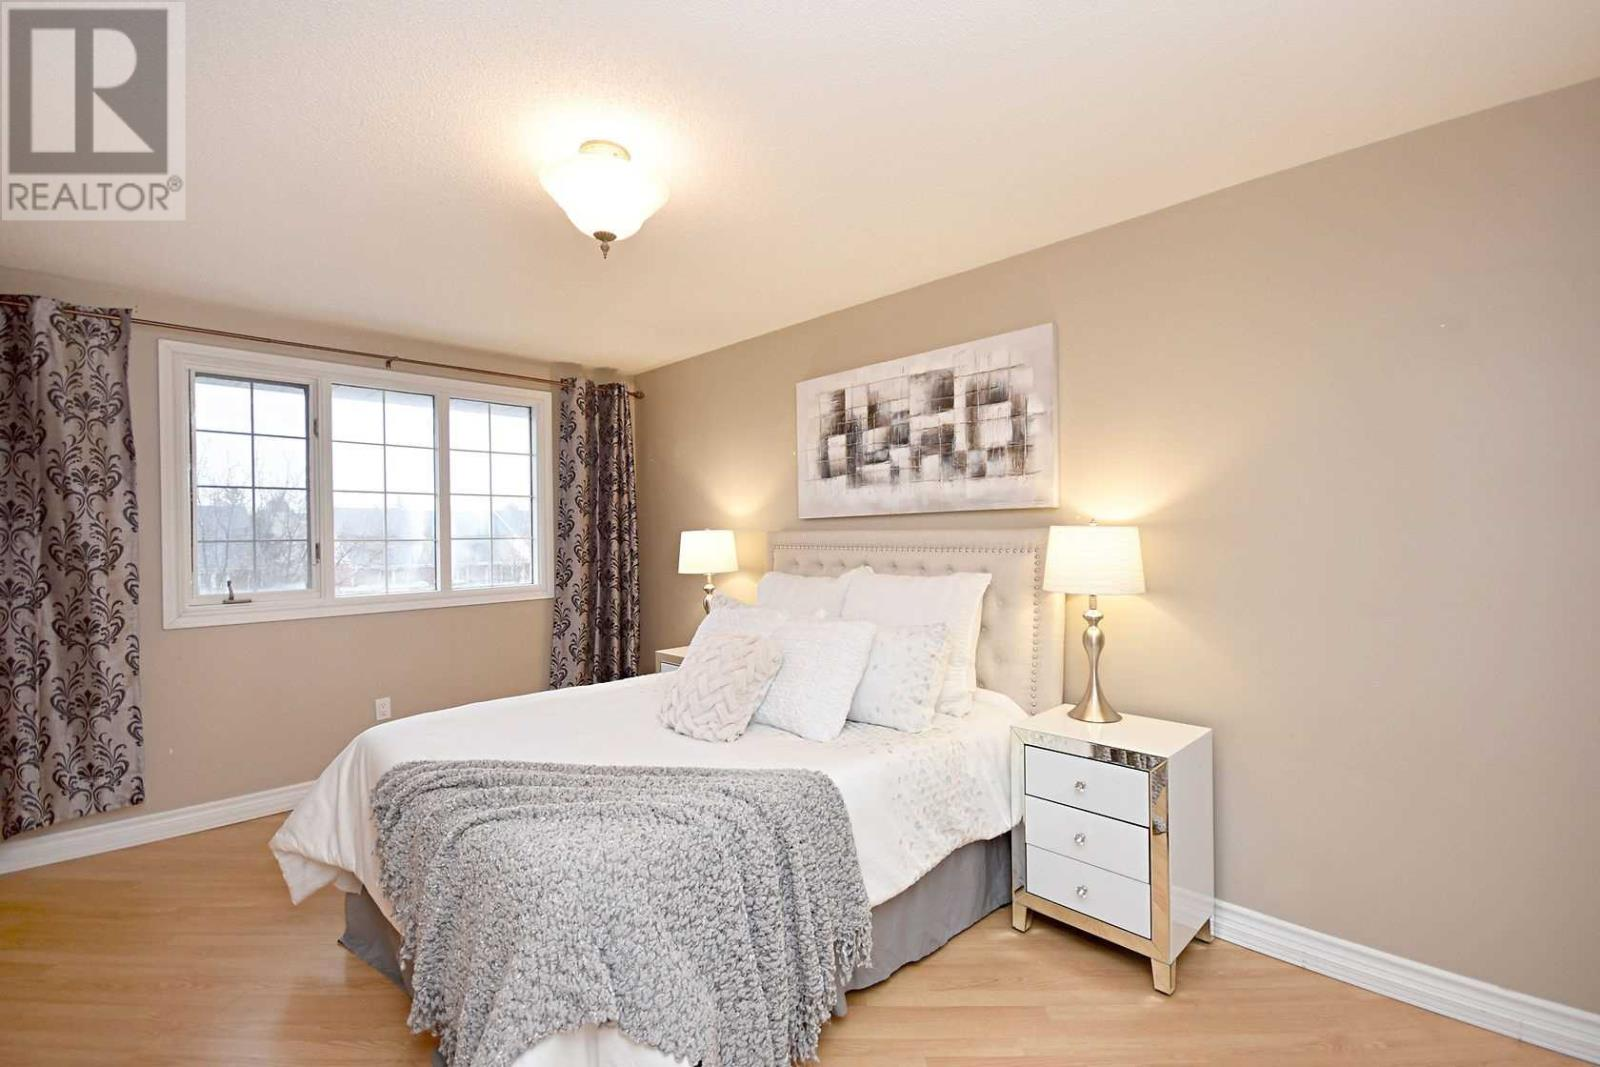 354 Howell Rd, Oakville, Ontario  L6H 5Y1 - Photo 7 - W4675254